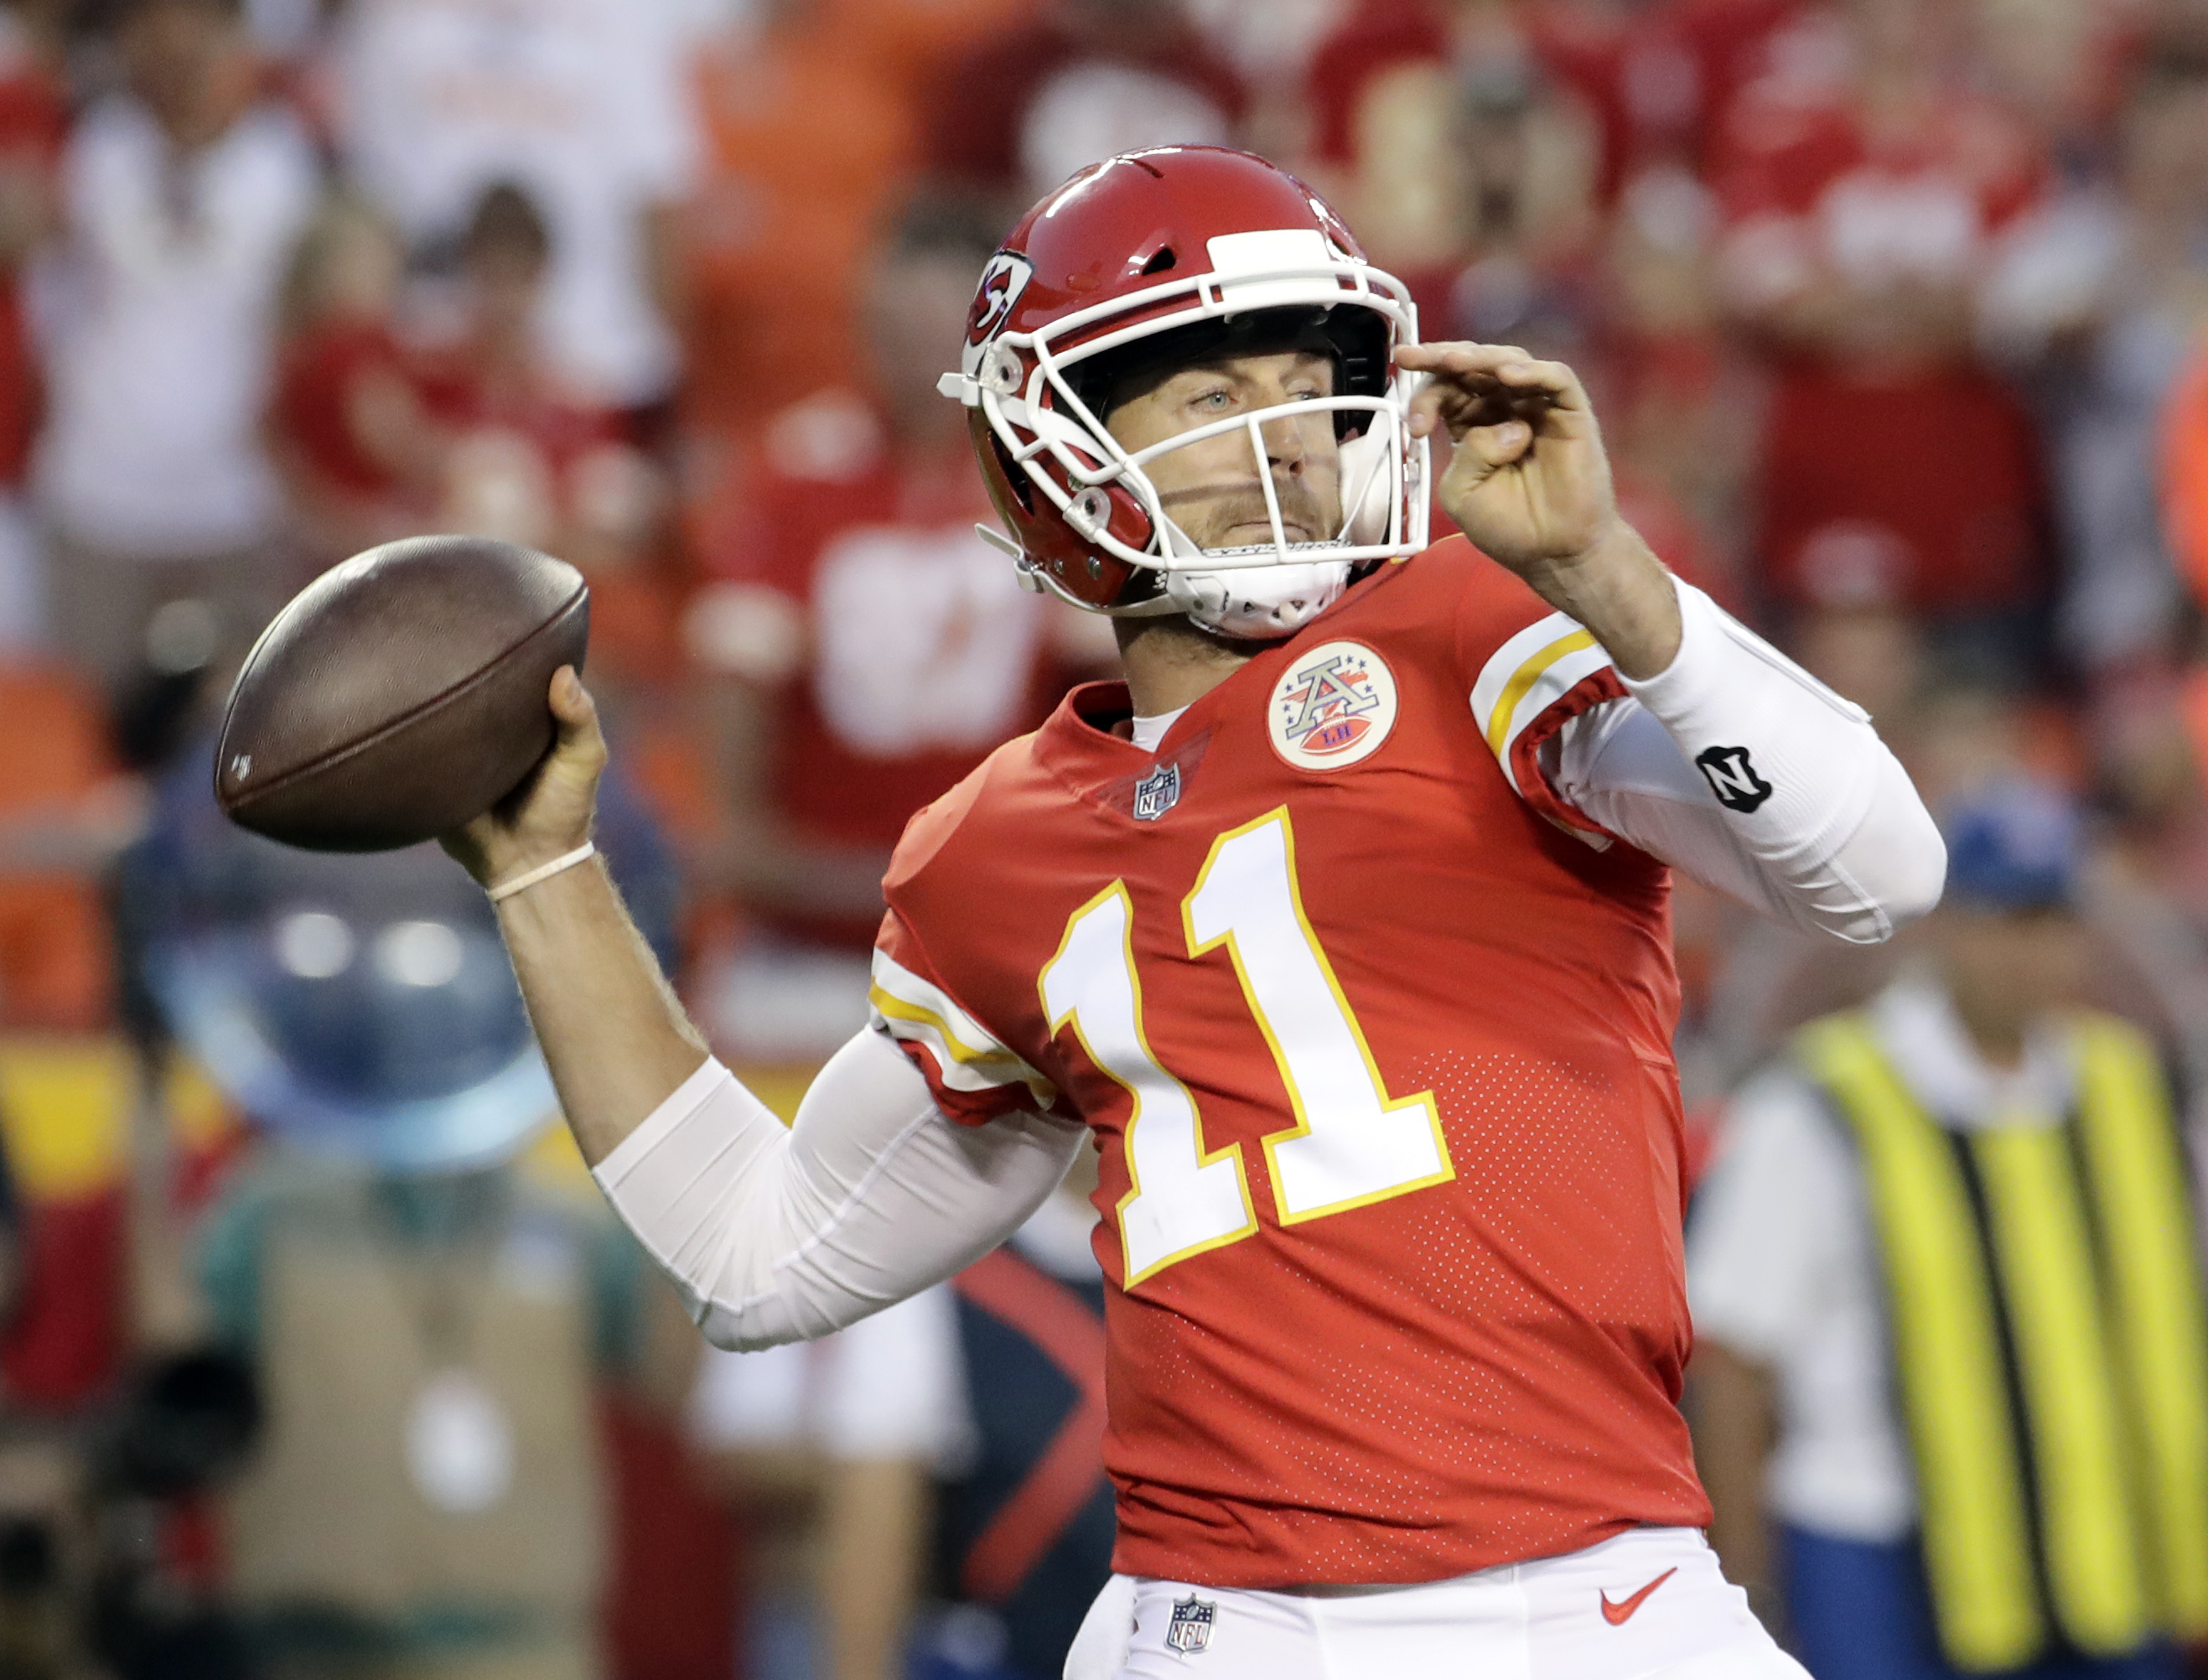 Kansas City Chiefs quarterback Alex Smith (11) throws during the first half of an NFL preseason football game against the San Francisco 49ers in Kansas City, Mo., Friday, Aug. 11, 2017. (AP Photo/Charlie Riedel)